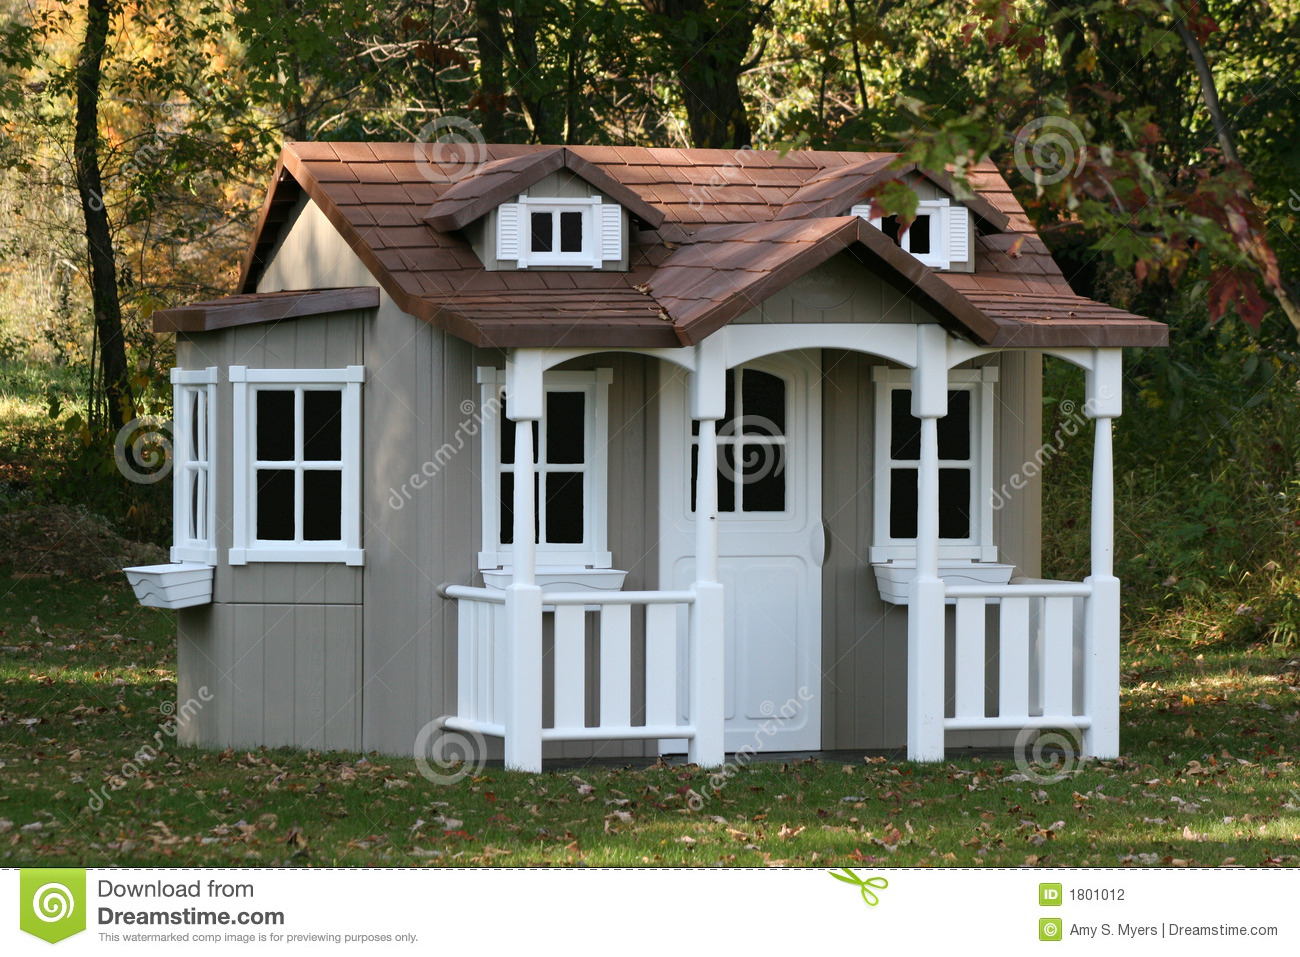 Childrens playhouse stock photography image 1801012 - Houses for families withchild ...